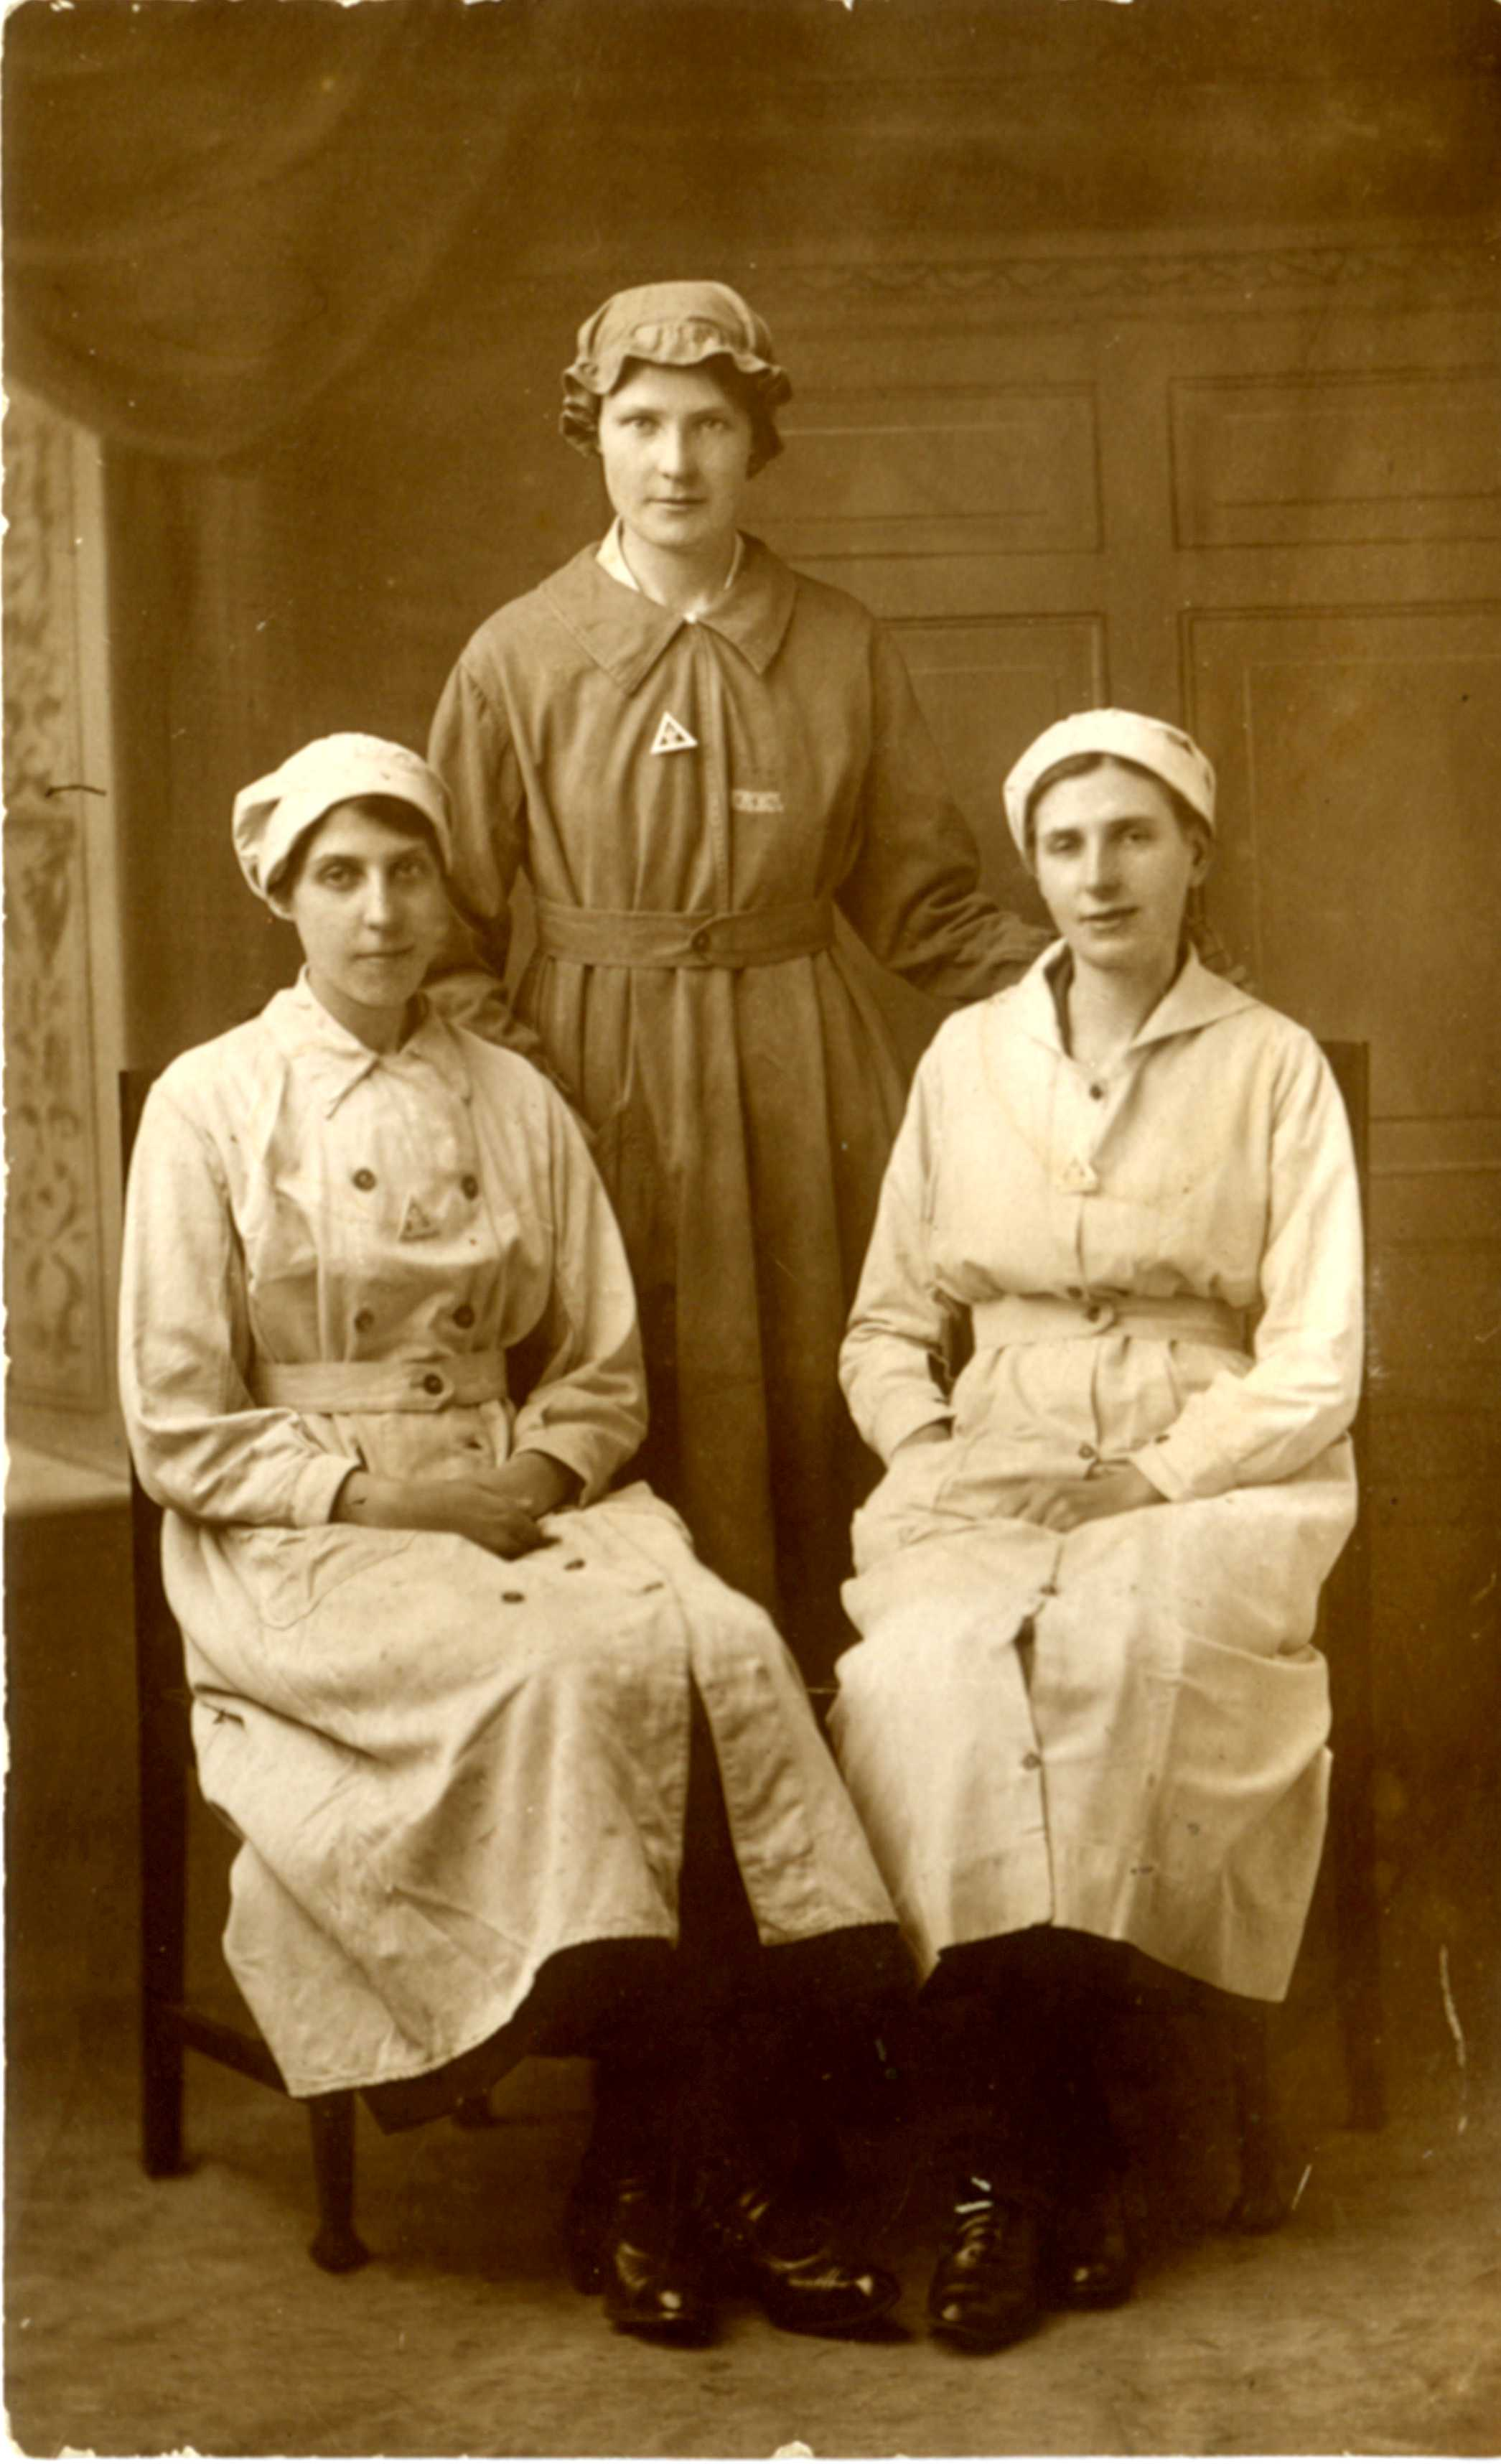 Three Smith sisters. Taken during the First World War. The inscription describes them as 'Charles' 3 sisters' and names them as Ada on the left, Ellie in the centre, and 'Ted Stoneham's wife' on the right. Ada was Florence Ada Smith of Chalks Road, who is interviewed here. It is a studio portrait. They have triangular badges which will be 'On War Service' badges, with a crown in the middle. They were issued in 1916 in brooch form, specially for women. Other badges for this purpose had button-hole fastenings. They are also wearing a uniform, Ellie's being different from the other two. Ada worked at the Station Maltings in munitions; Ted's wife's uniform is the same as hers.